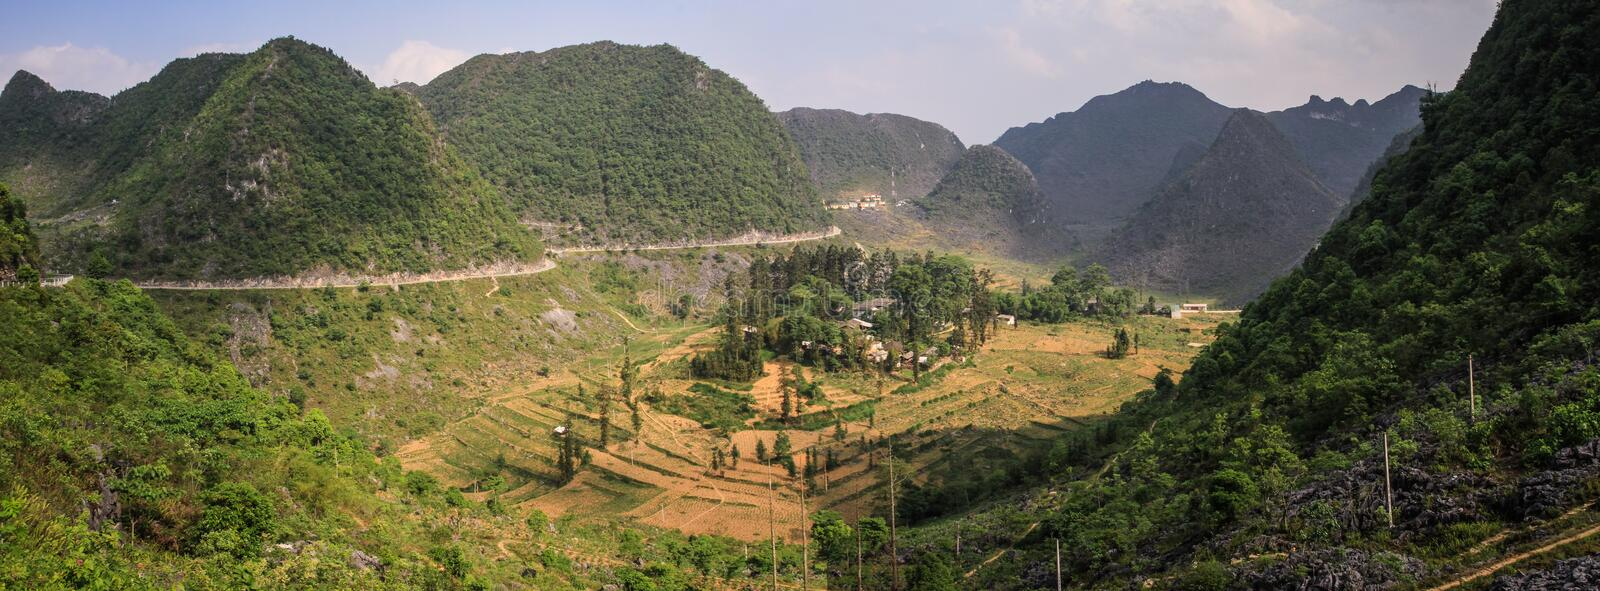 Panorama of the majestic karst mountains around Meo Vac, Ha Giang Province, Vietnam. Meo Vac is a small but charming district capital hemmed in by steep karst royalty free stock photos